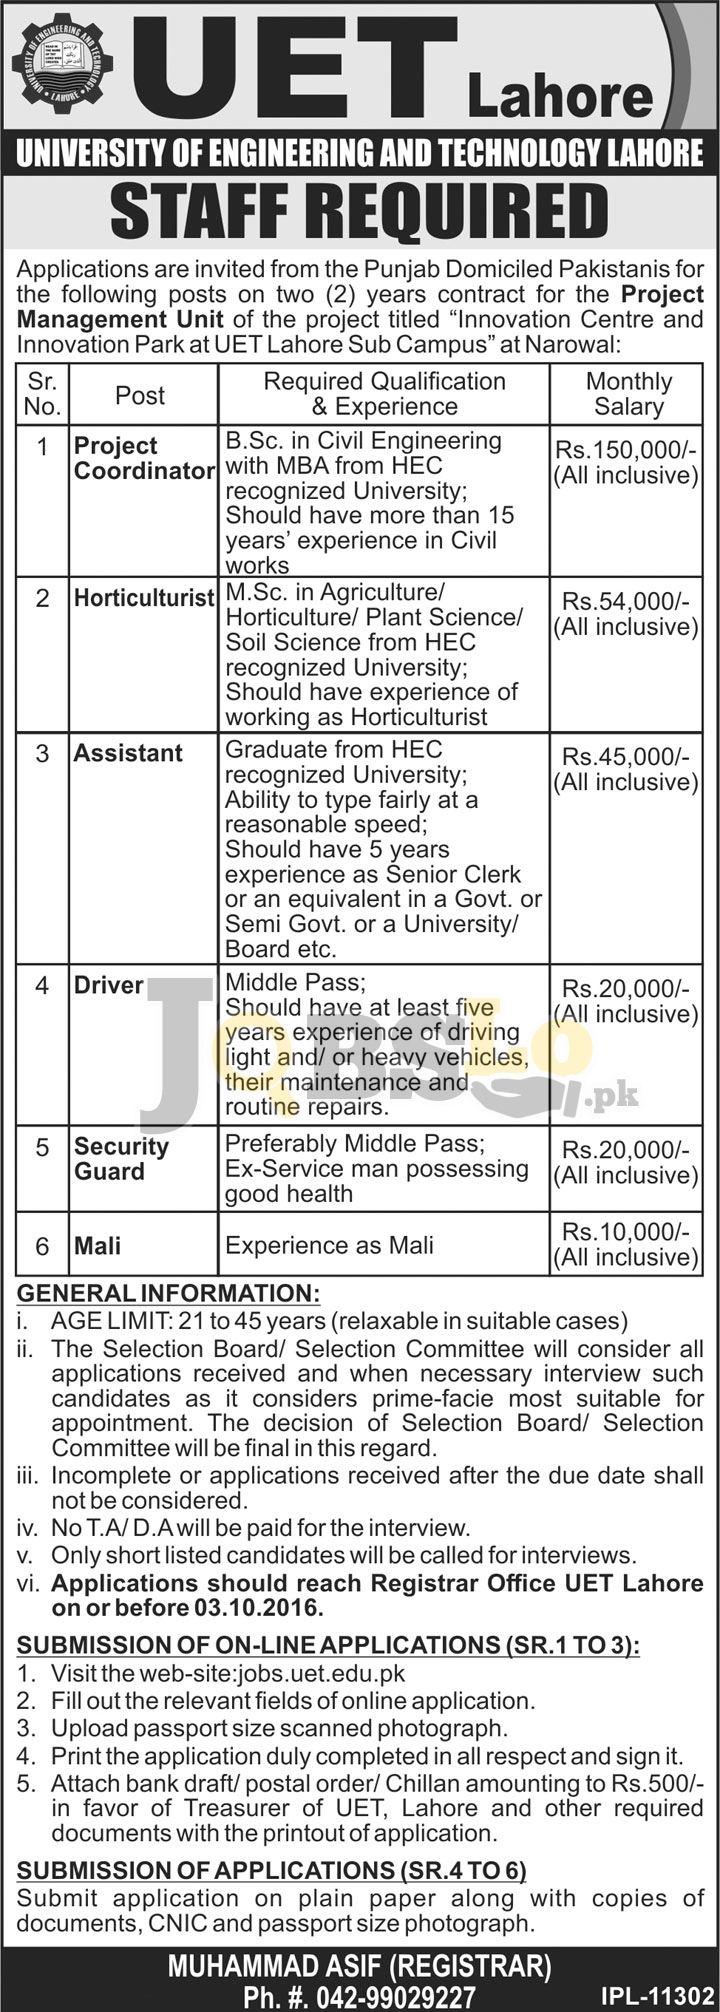 University of Engineering & Technology Lahore Narowal Campus Jobs 2016 Online Form Download